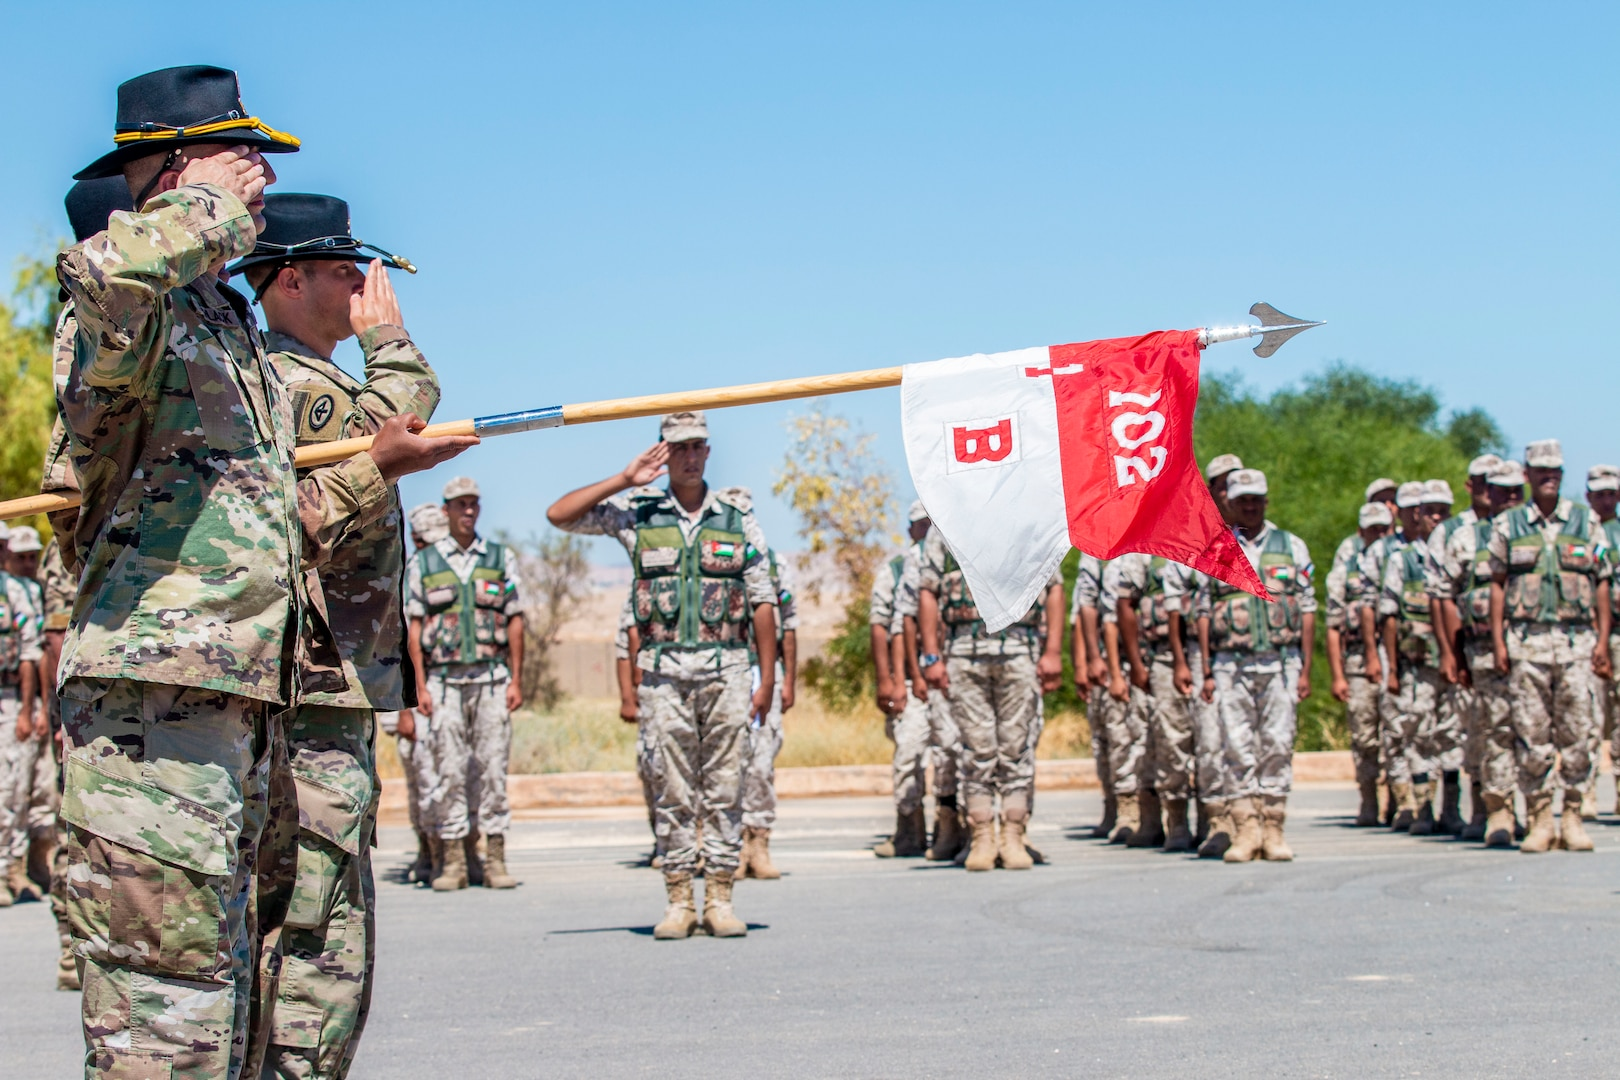 New Jersey National Guard Soldiers, with 1st Squadron, 102nd Calvary Regiment, and Jordan Border Guard Force Soldiers, with the 7th Mechanized Battalion, 48th Mechanized Brigade, render a salute to the Jordanian and American National Anthems during the Jordan Operational Engagement Program (JOEP) opening ceremony July 14, 2019. JOEP is a 14-week individual and collective training, as well as a military partnership between Jordan and America.